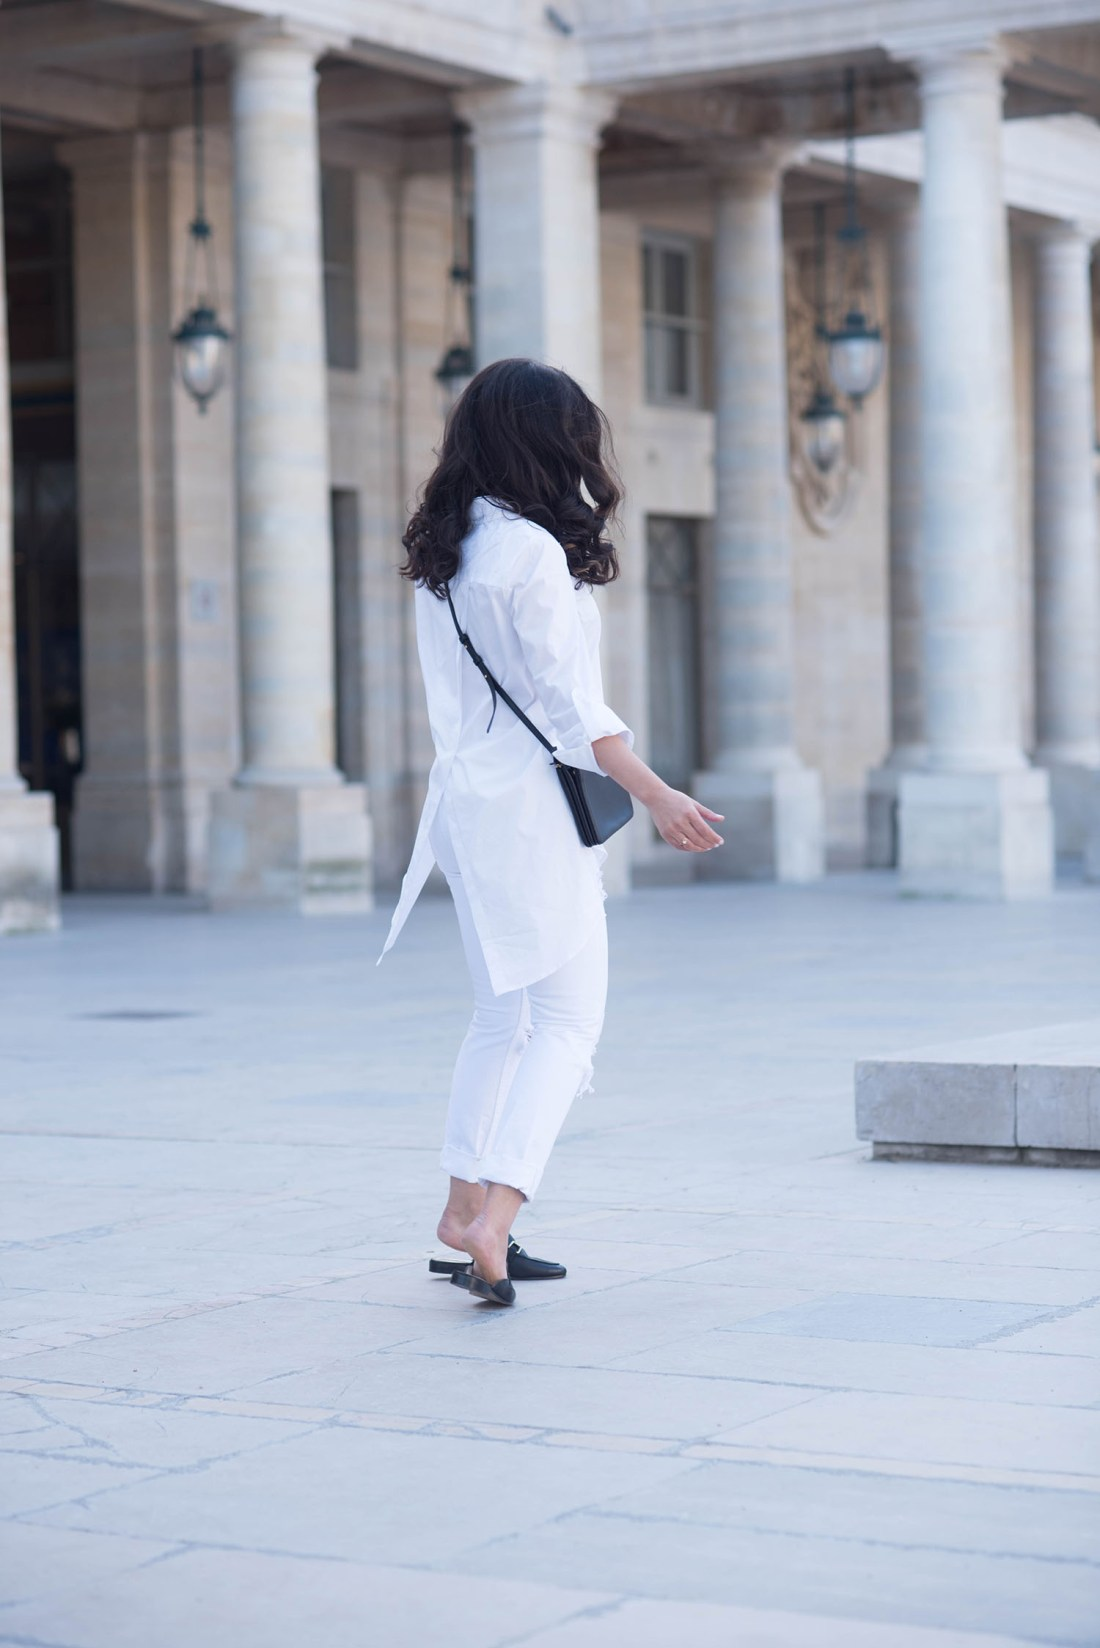 Canadian fashion blogger Cee Fardoe of Coco & Vera twirls in the Palais Royal, wearing Jonak mules and a Marled white blouse